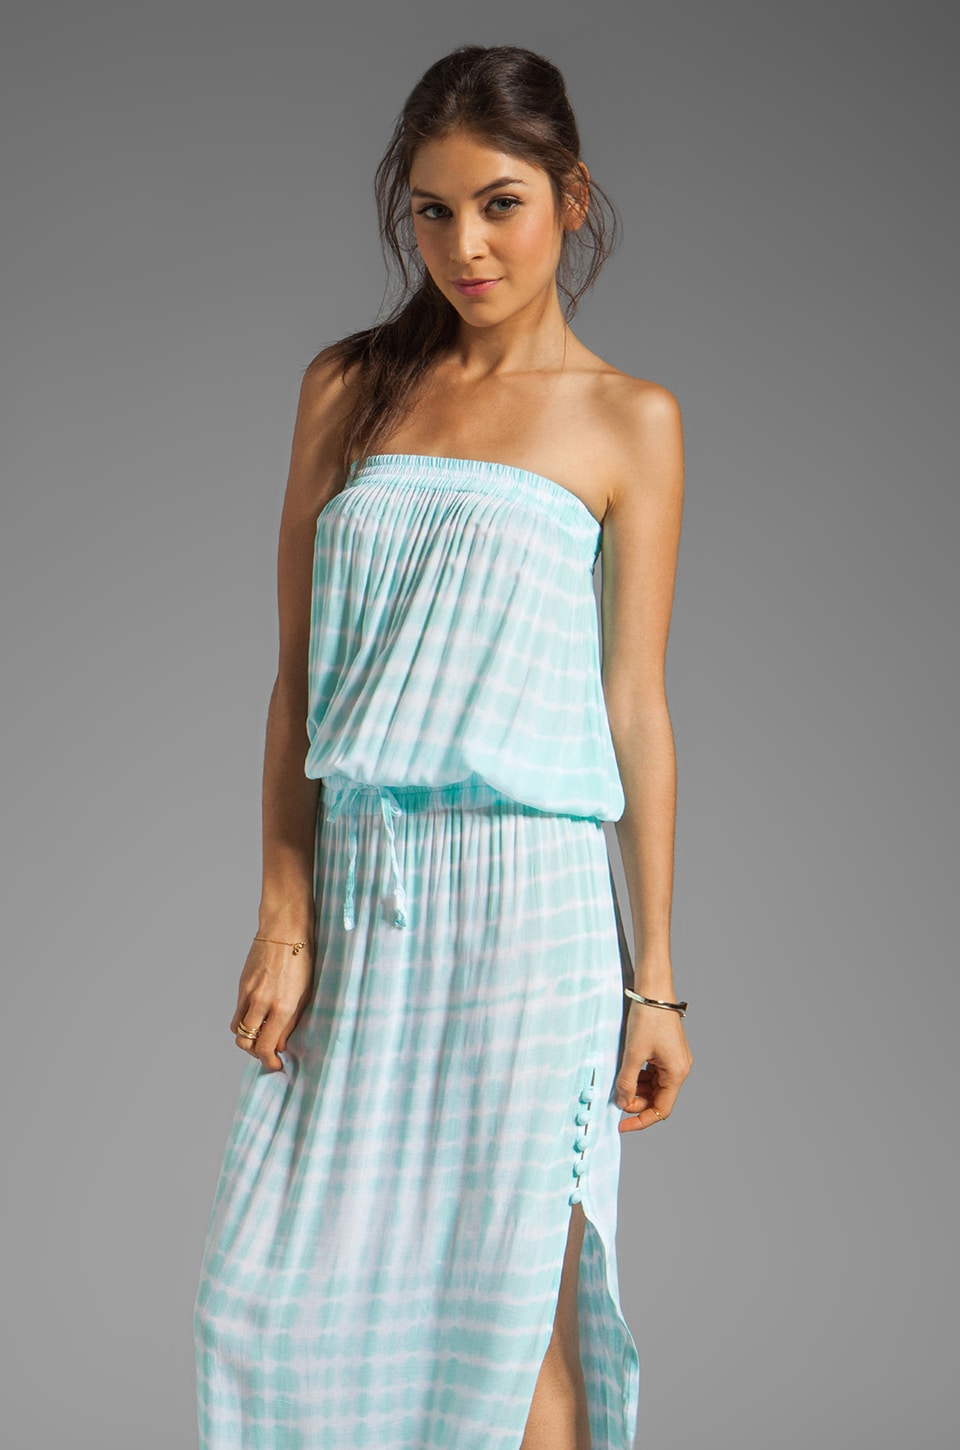 Tiare Hawaii Drifter Dress in Teal White Tie Dye